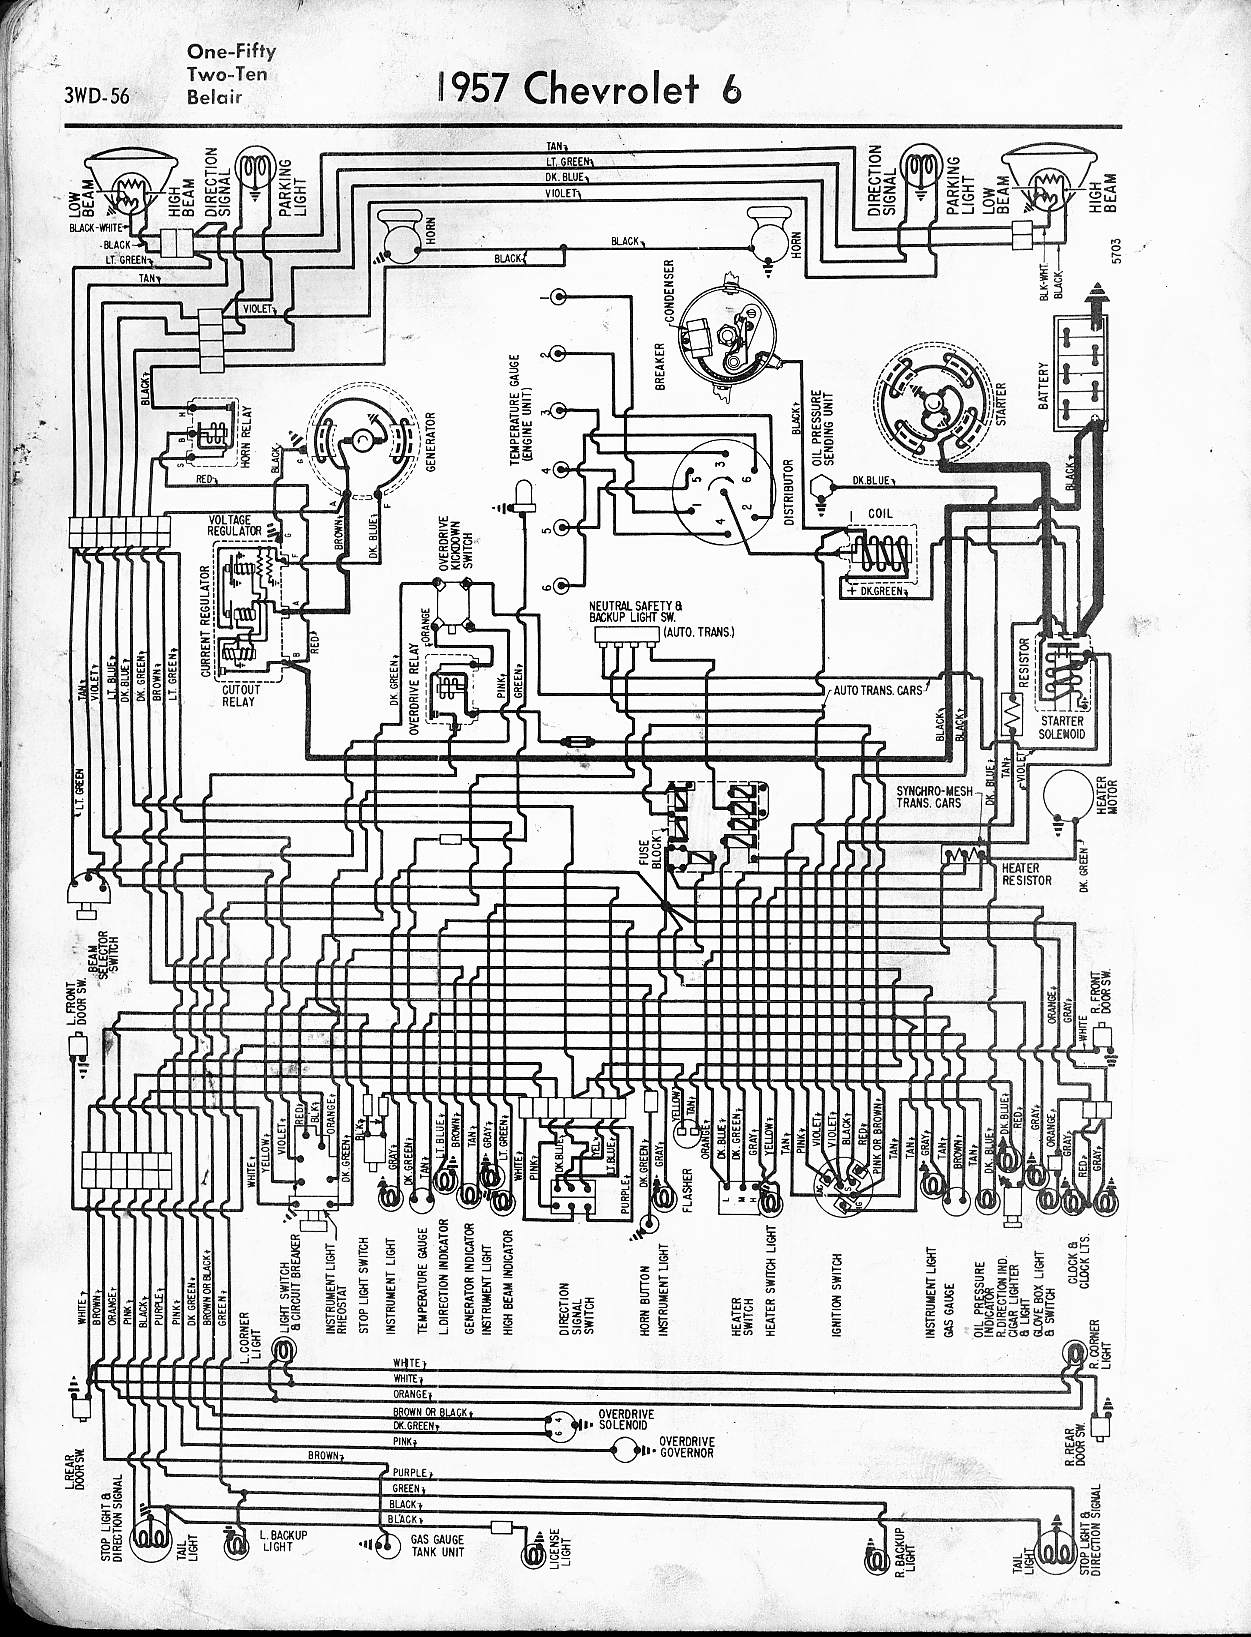 1963 buick wiring harness wiring diagram detailed1957 buick wiring harness wiring diagram library 1971 buick 1957 chevy power top diagram schematic diagram